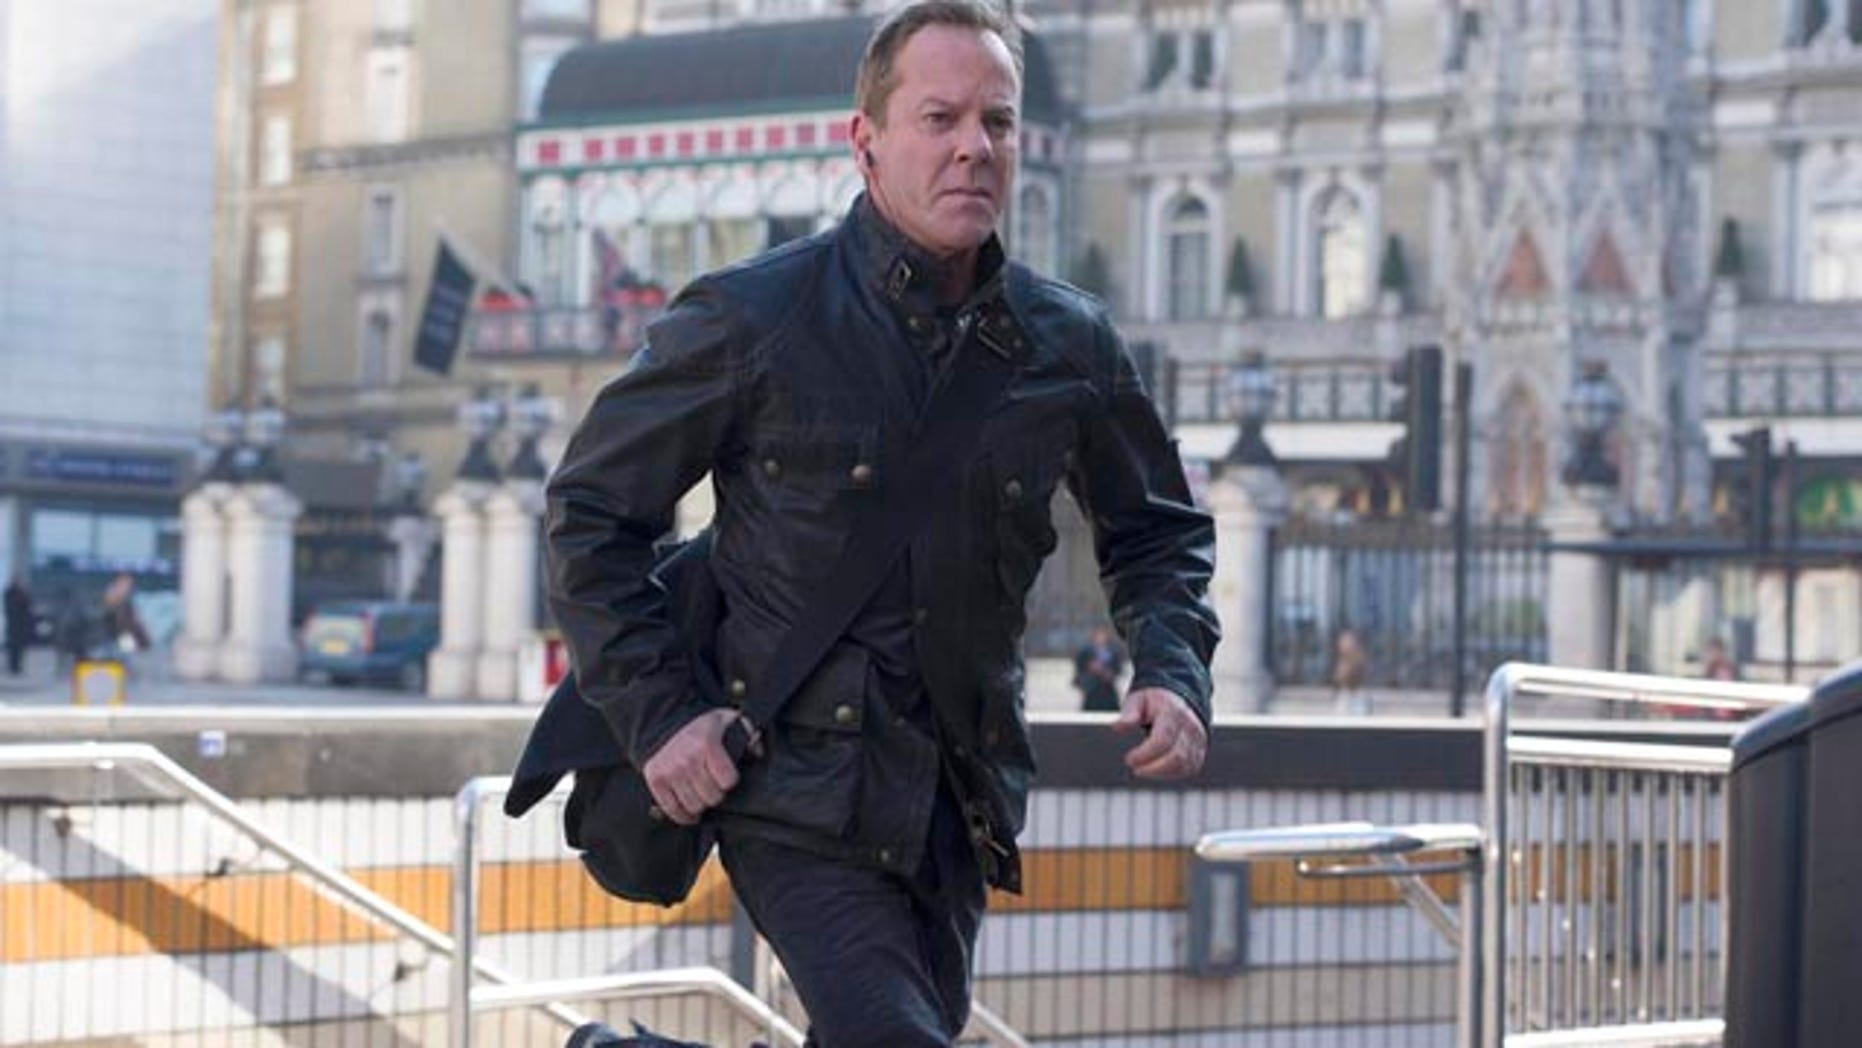 'JACK' OF ALL TRADES: Kiefer Sutherland as Jack Bauer of '24: Live Another Day' (Daniel Smith/FOX)